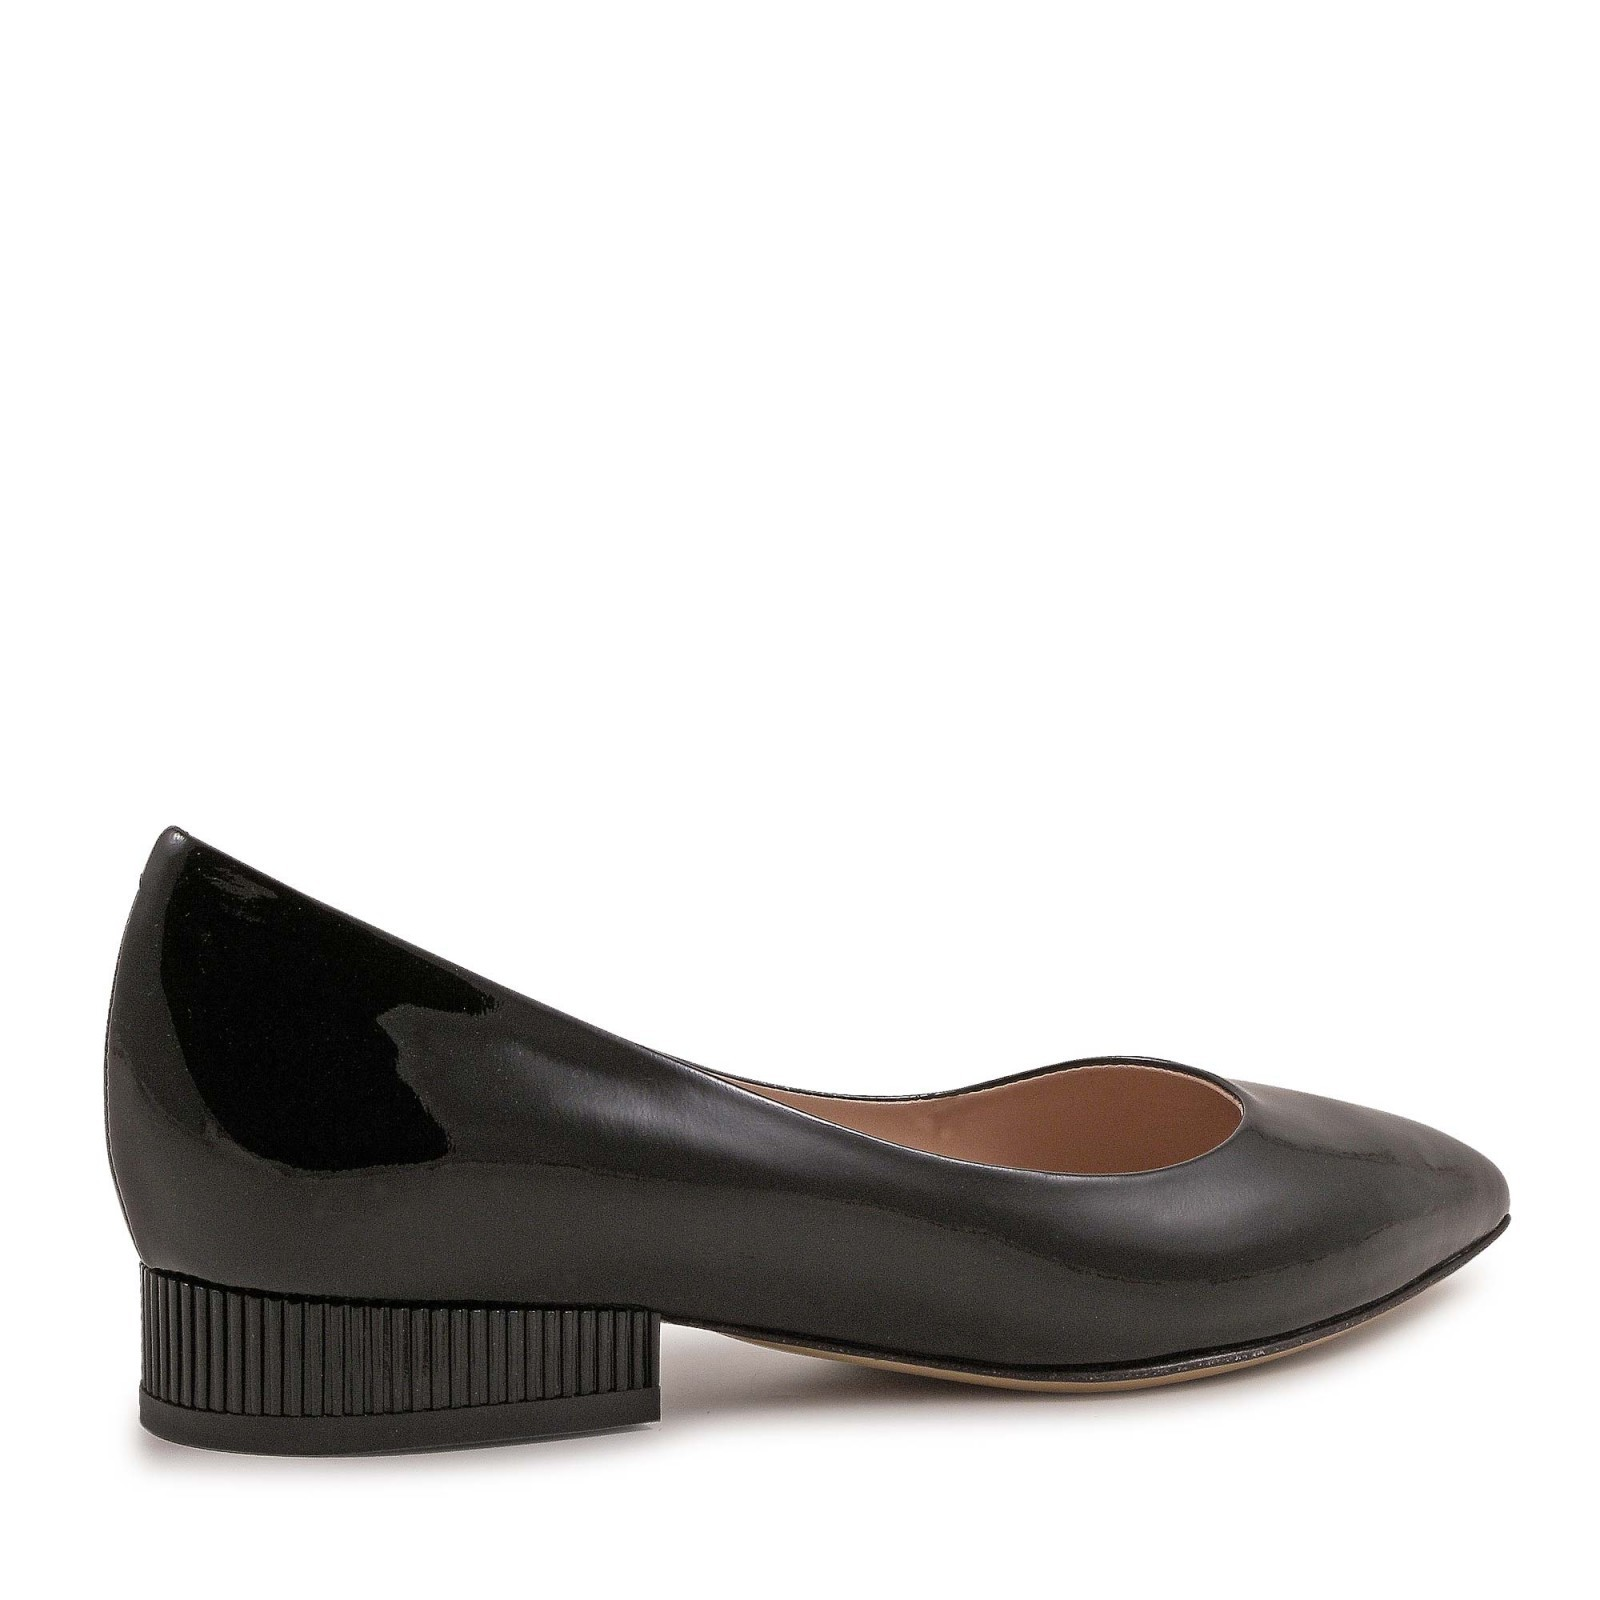 Black Leather Pumps Low Heel uI0AhTqo